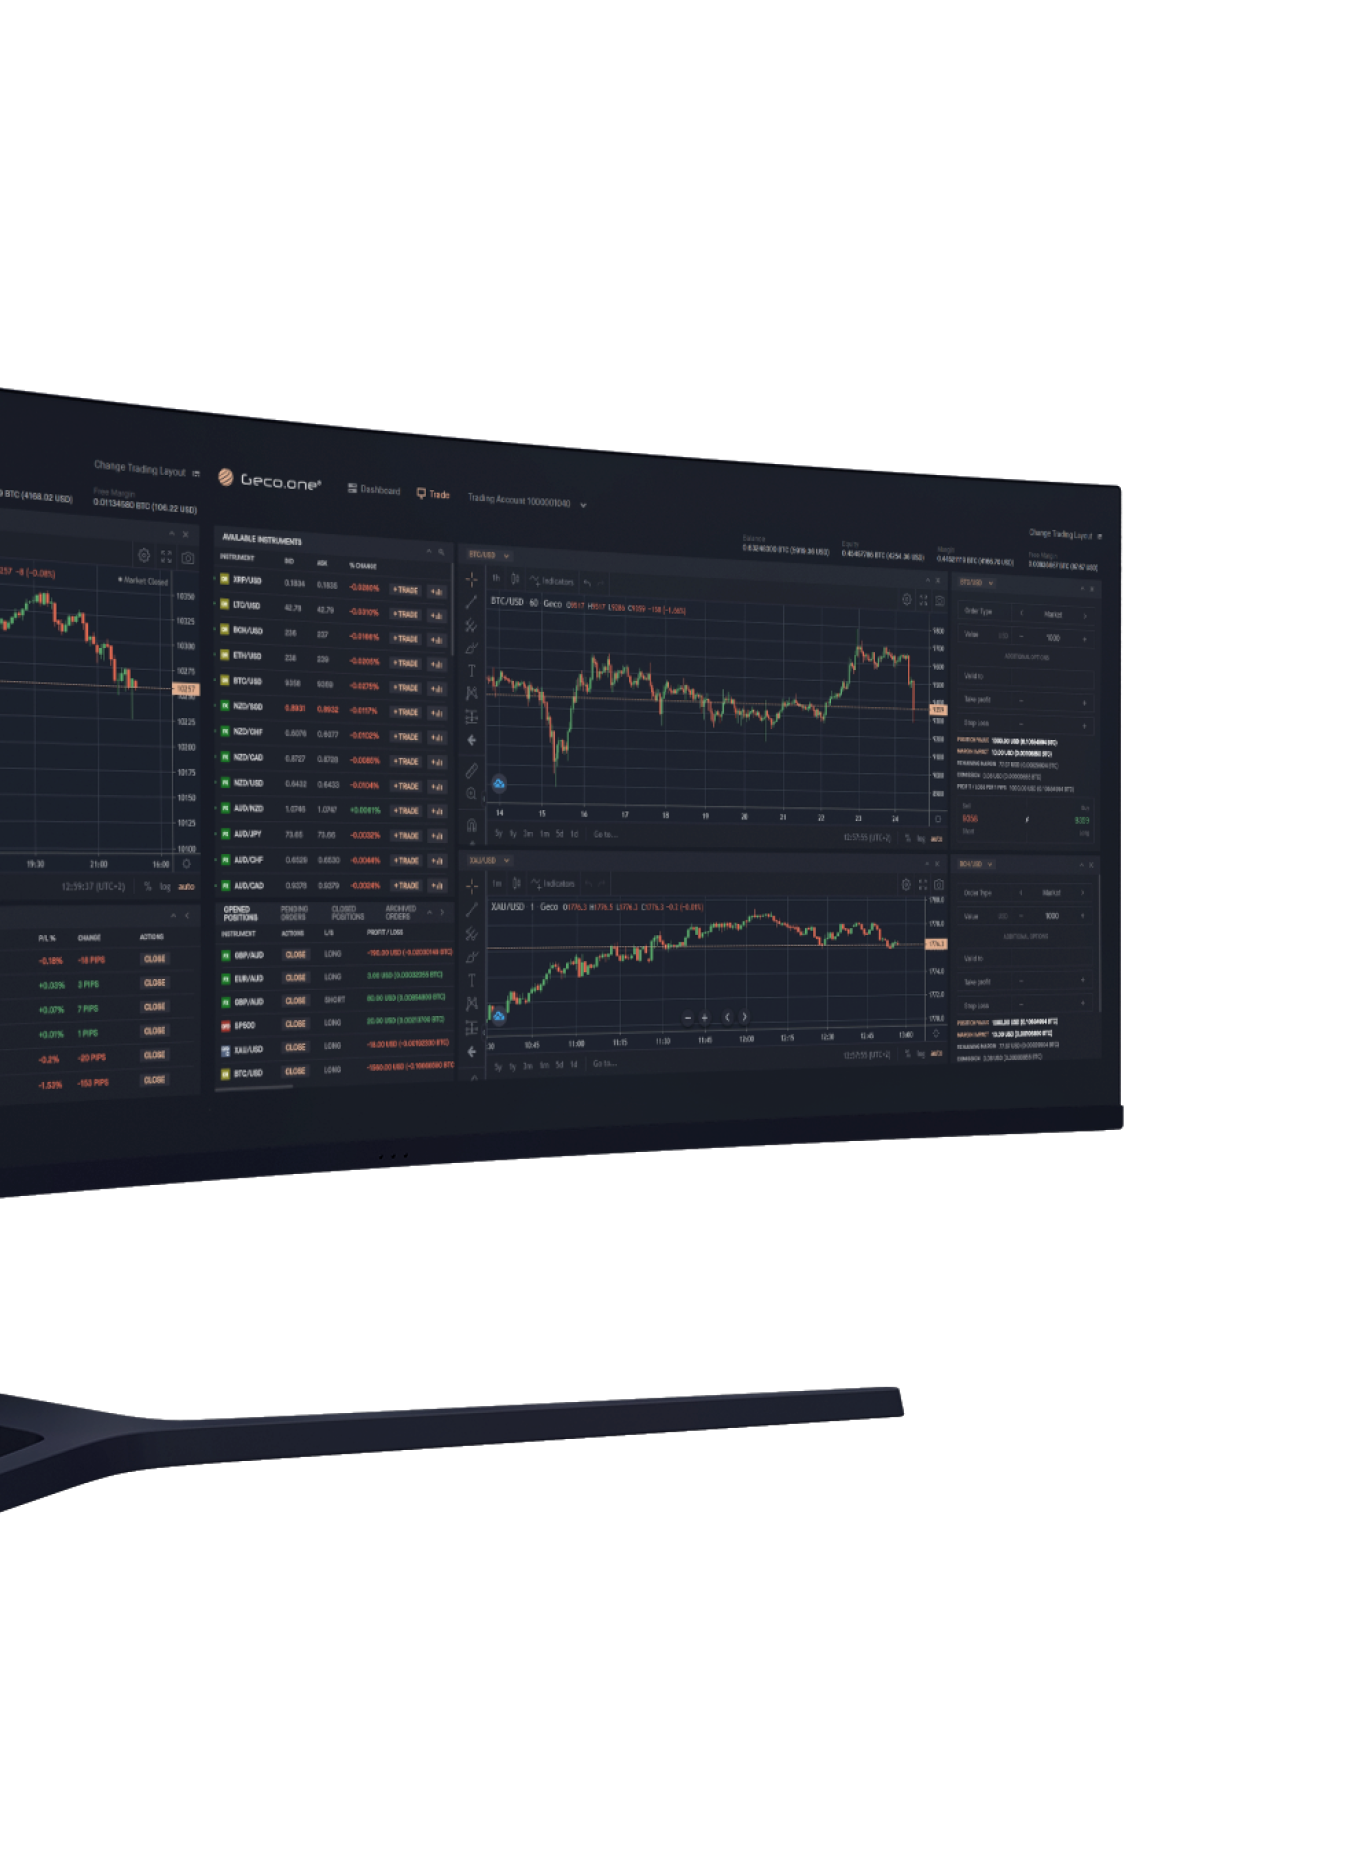 What the fully customisable Geco.one crypto margin trading set up looks like on screen